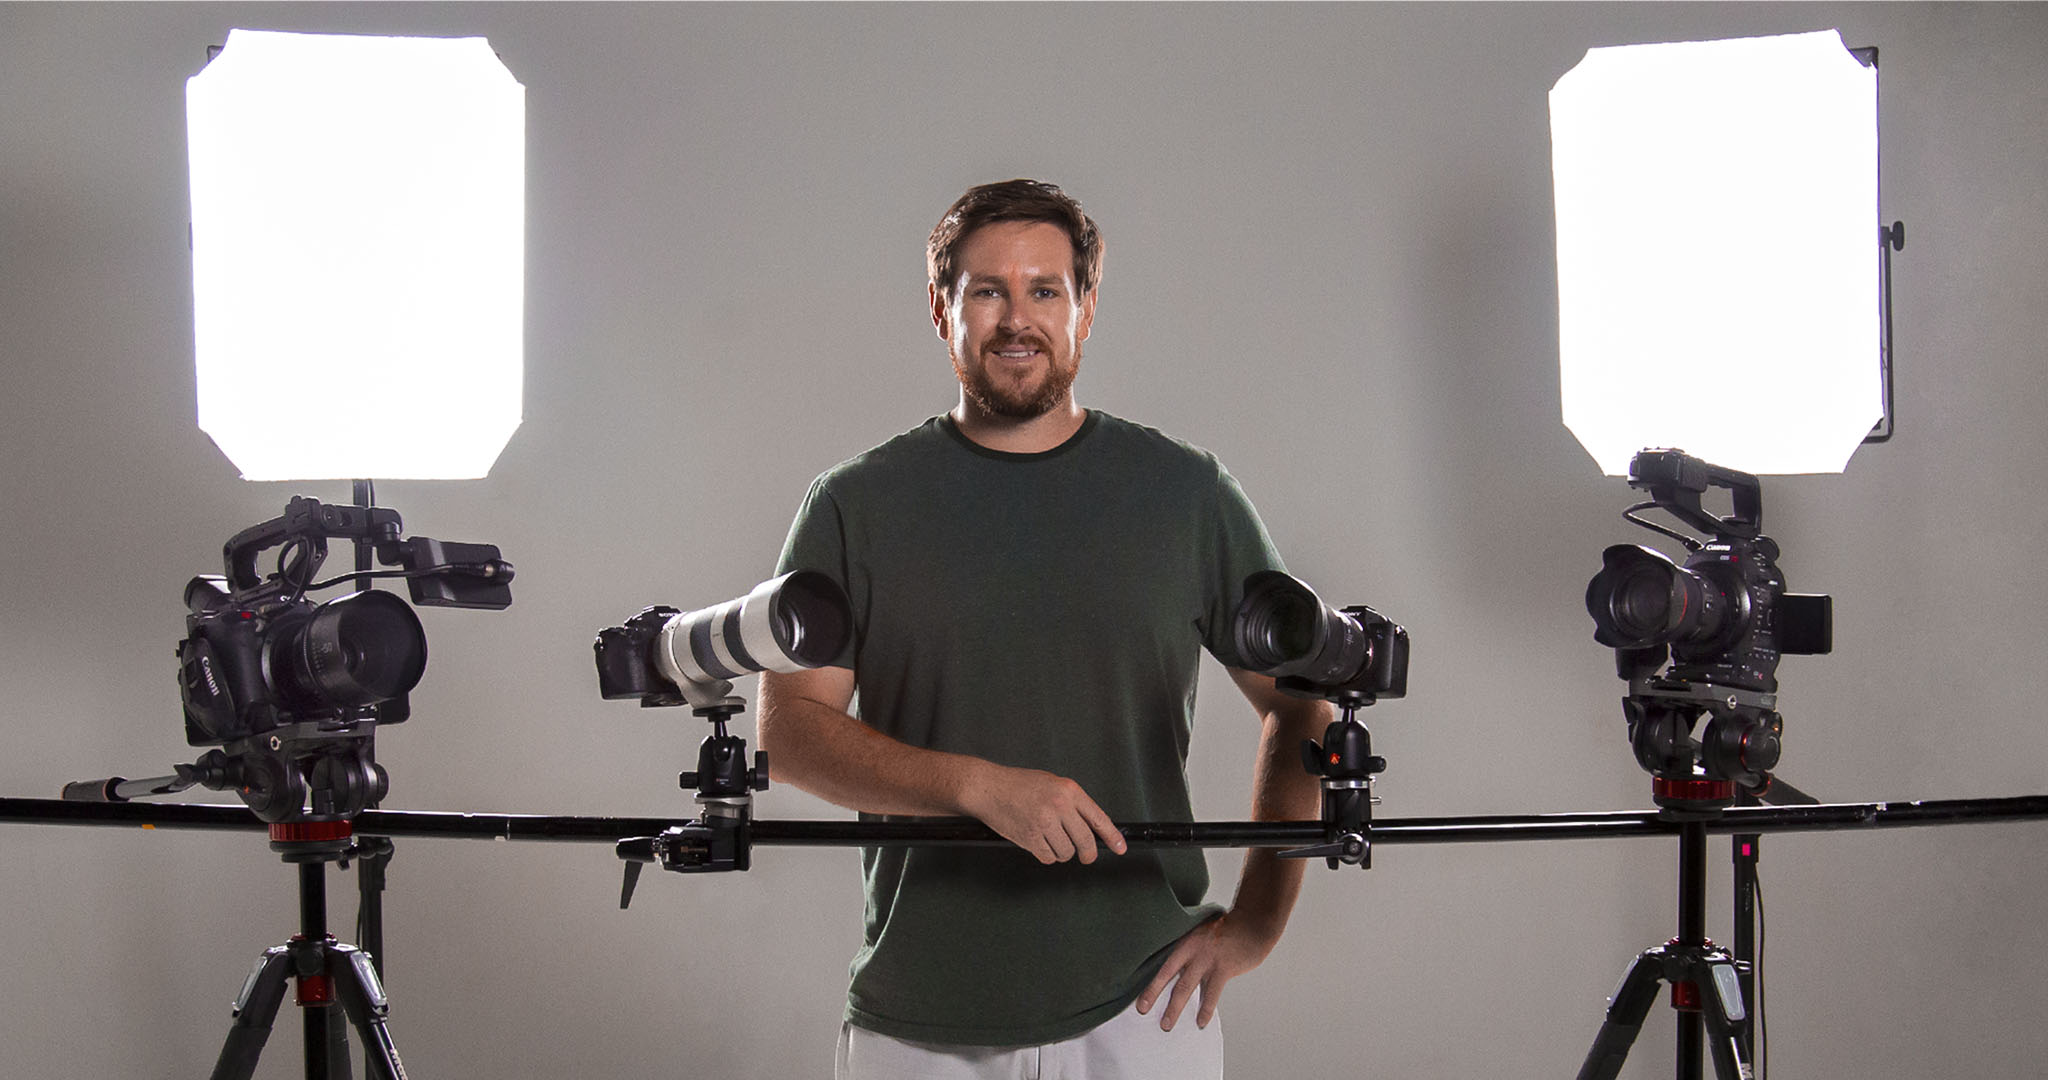 wide shot of Andrew Ravera standing behind a camera slider and multiple cameras